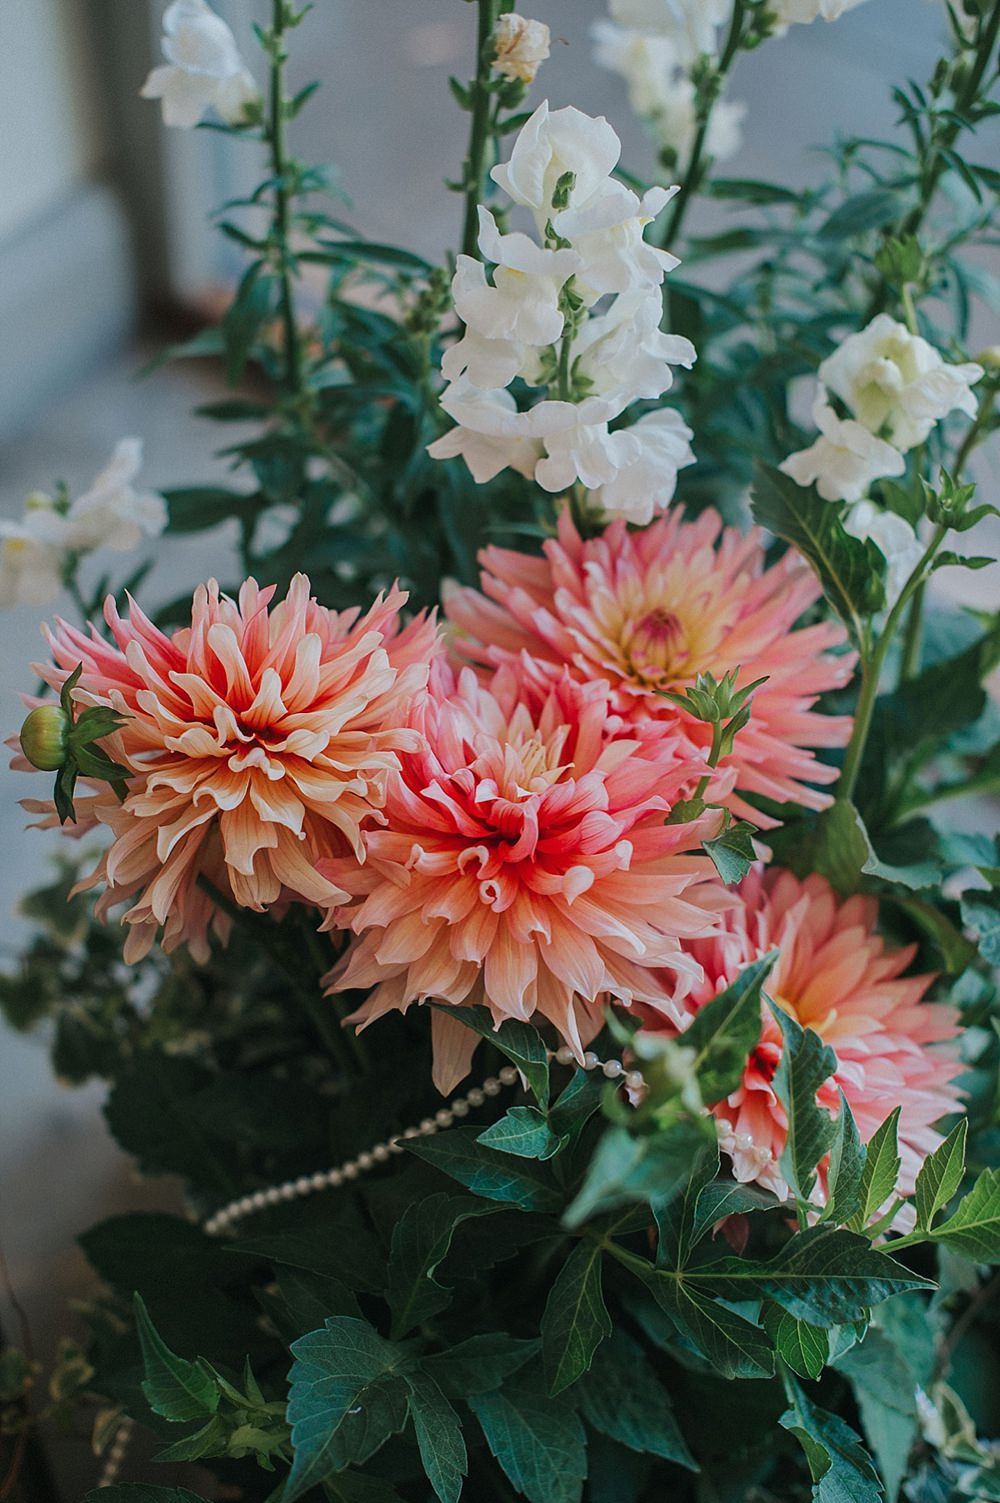 Croal Dahia Flowers Houchins Farm Wedding Julia and You Photography